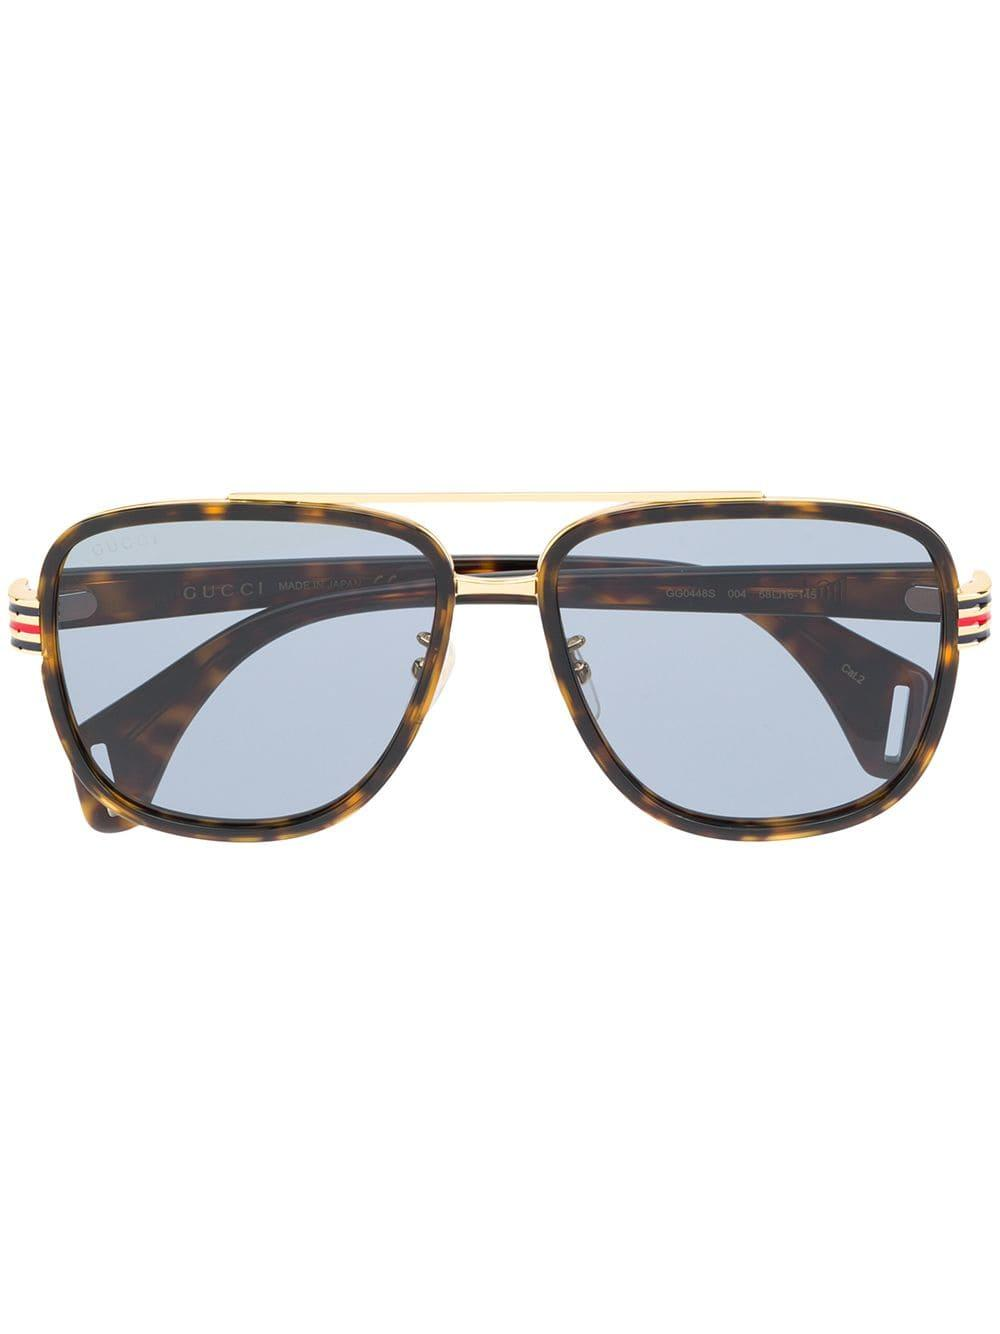 9fa5be87fe8 Gucci Square Frame Sunglasses in Brown for Men - Lyst